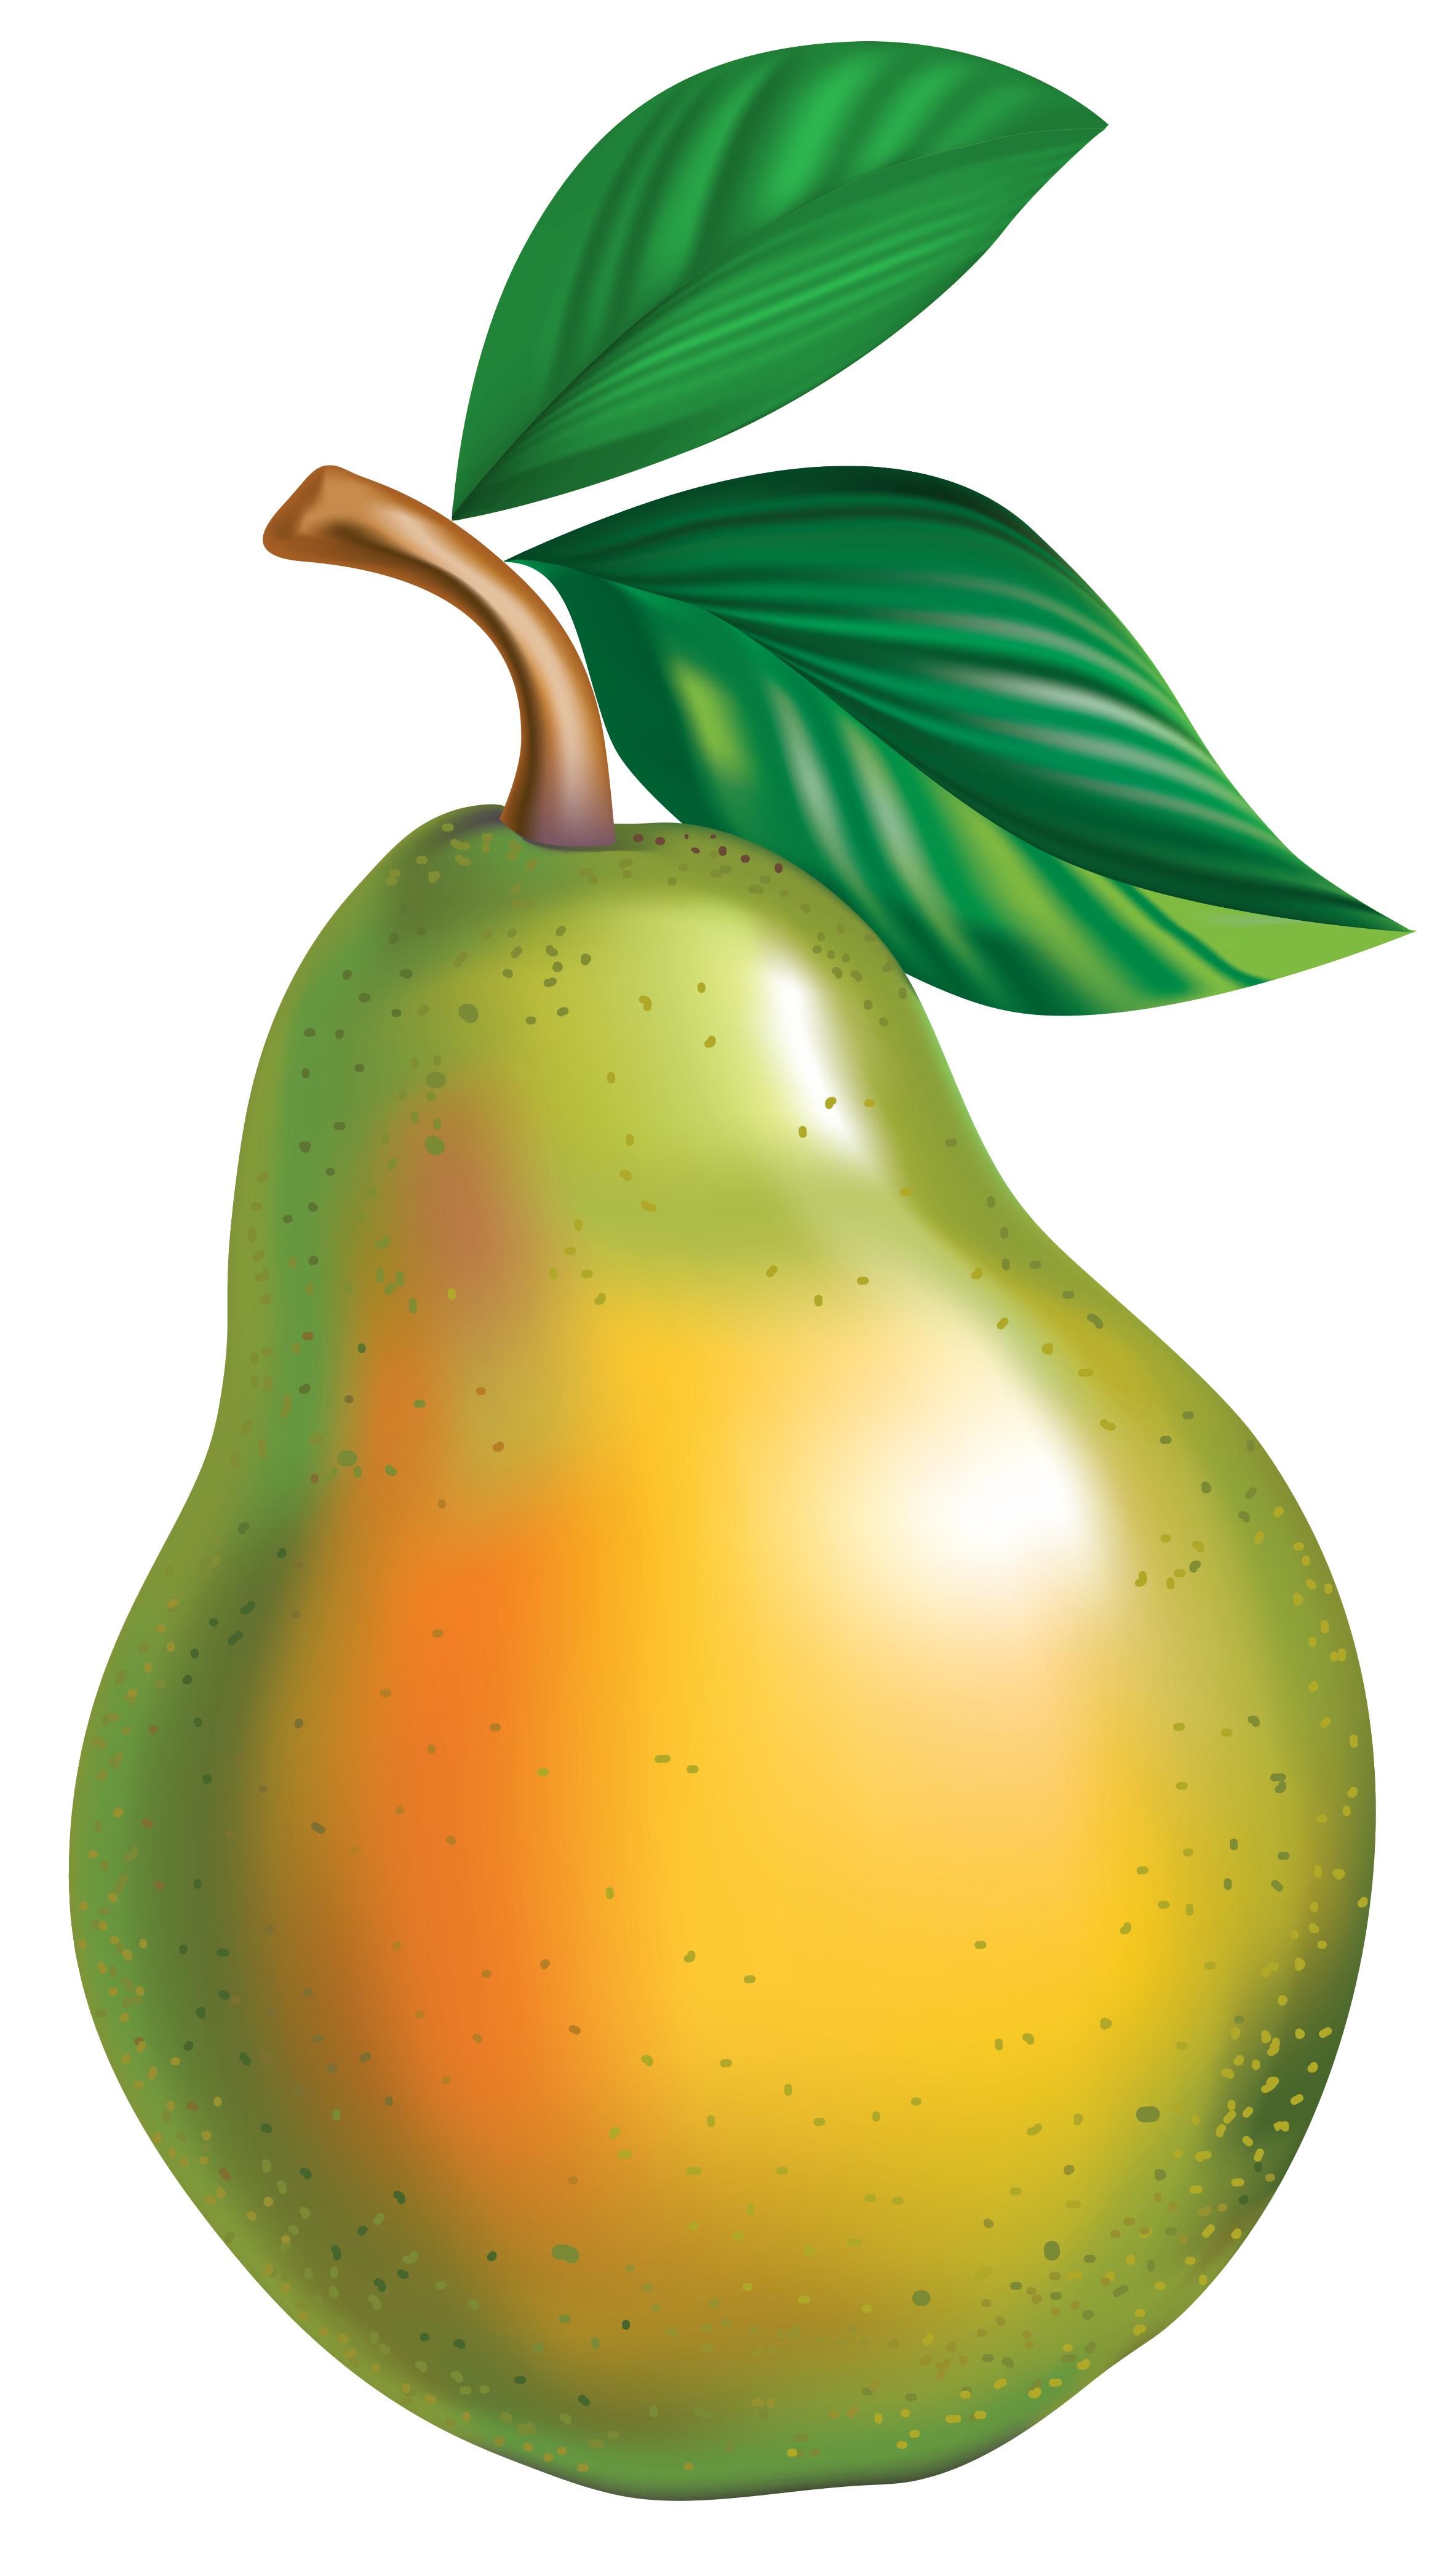 Asian clip art png. Pear clipart different kind fruit